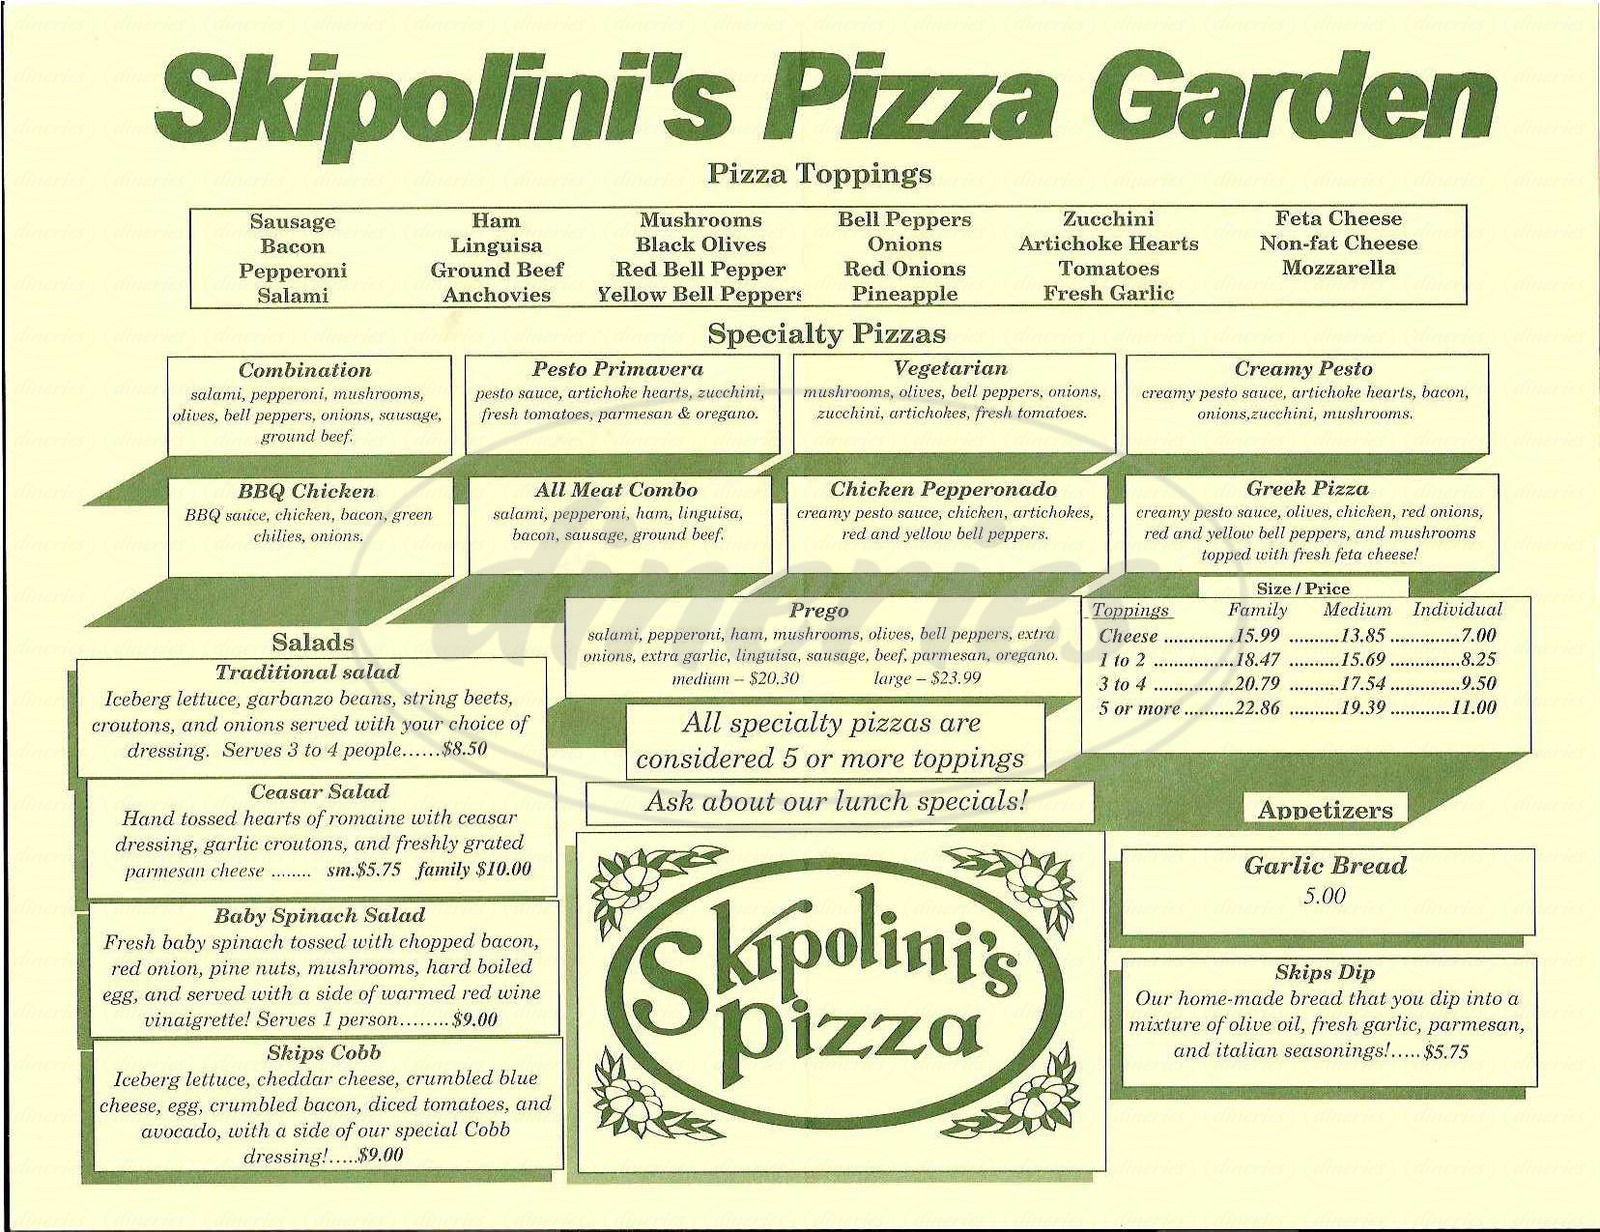 menu for Skipolinis Pizza